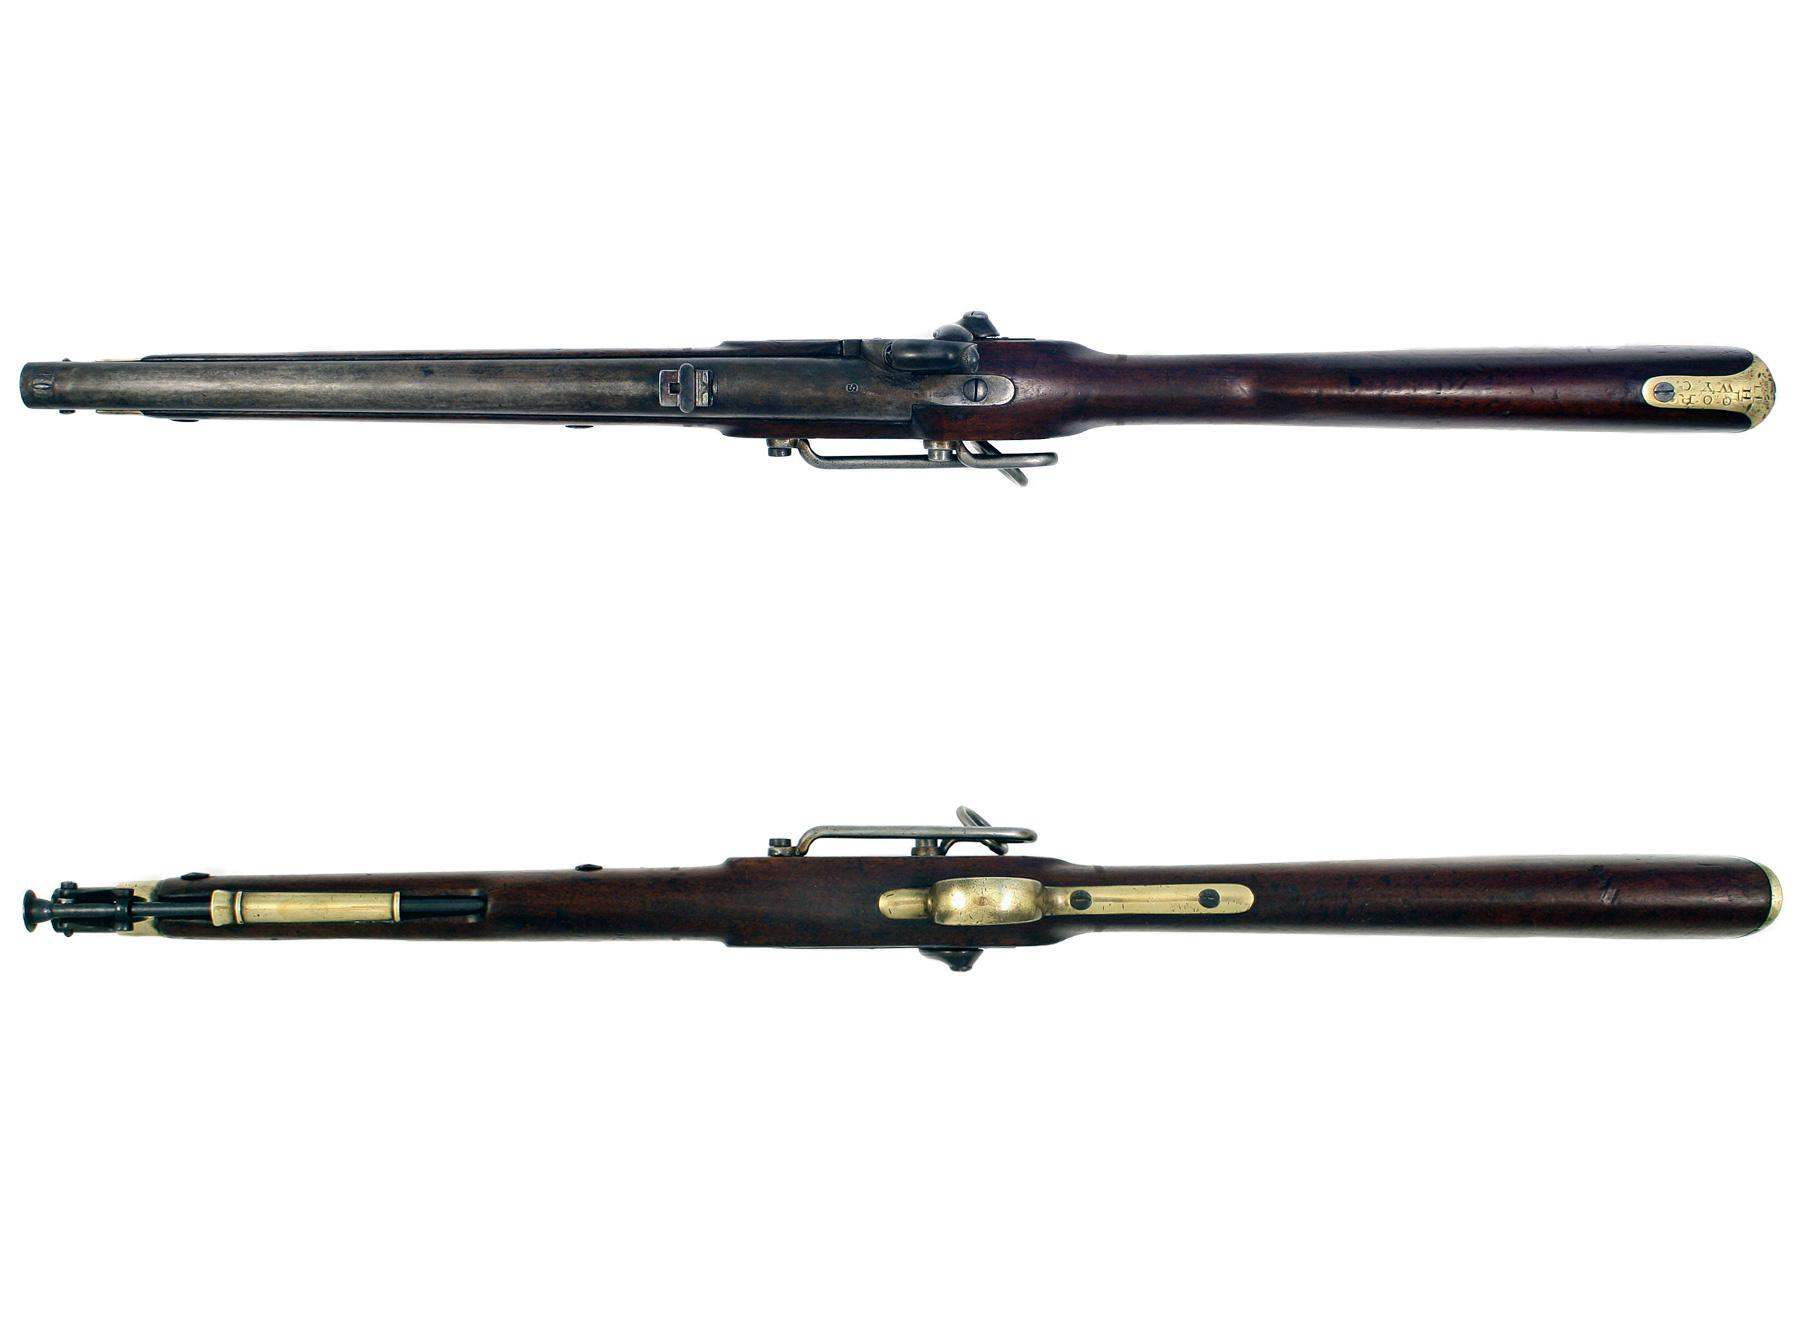 A P58 Rifled Paget Carbine